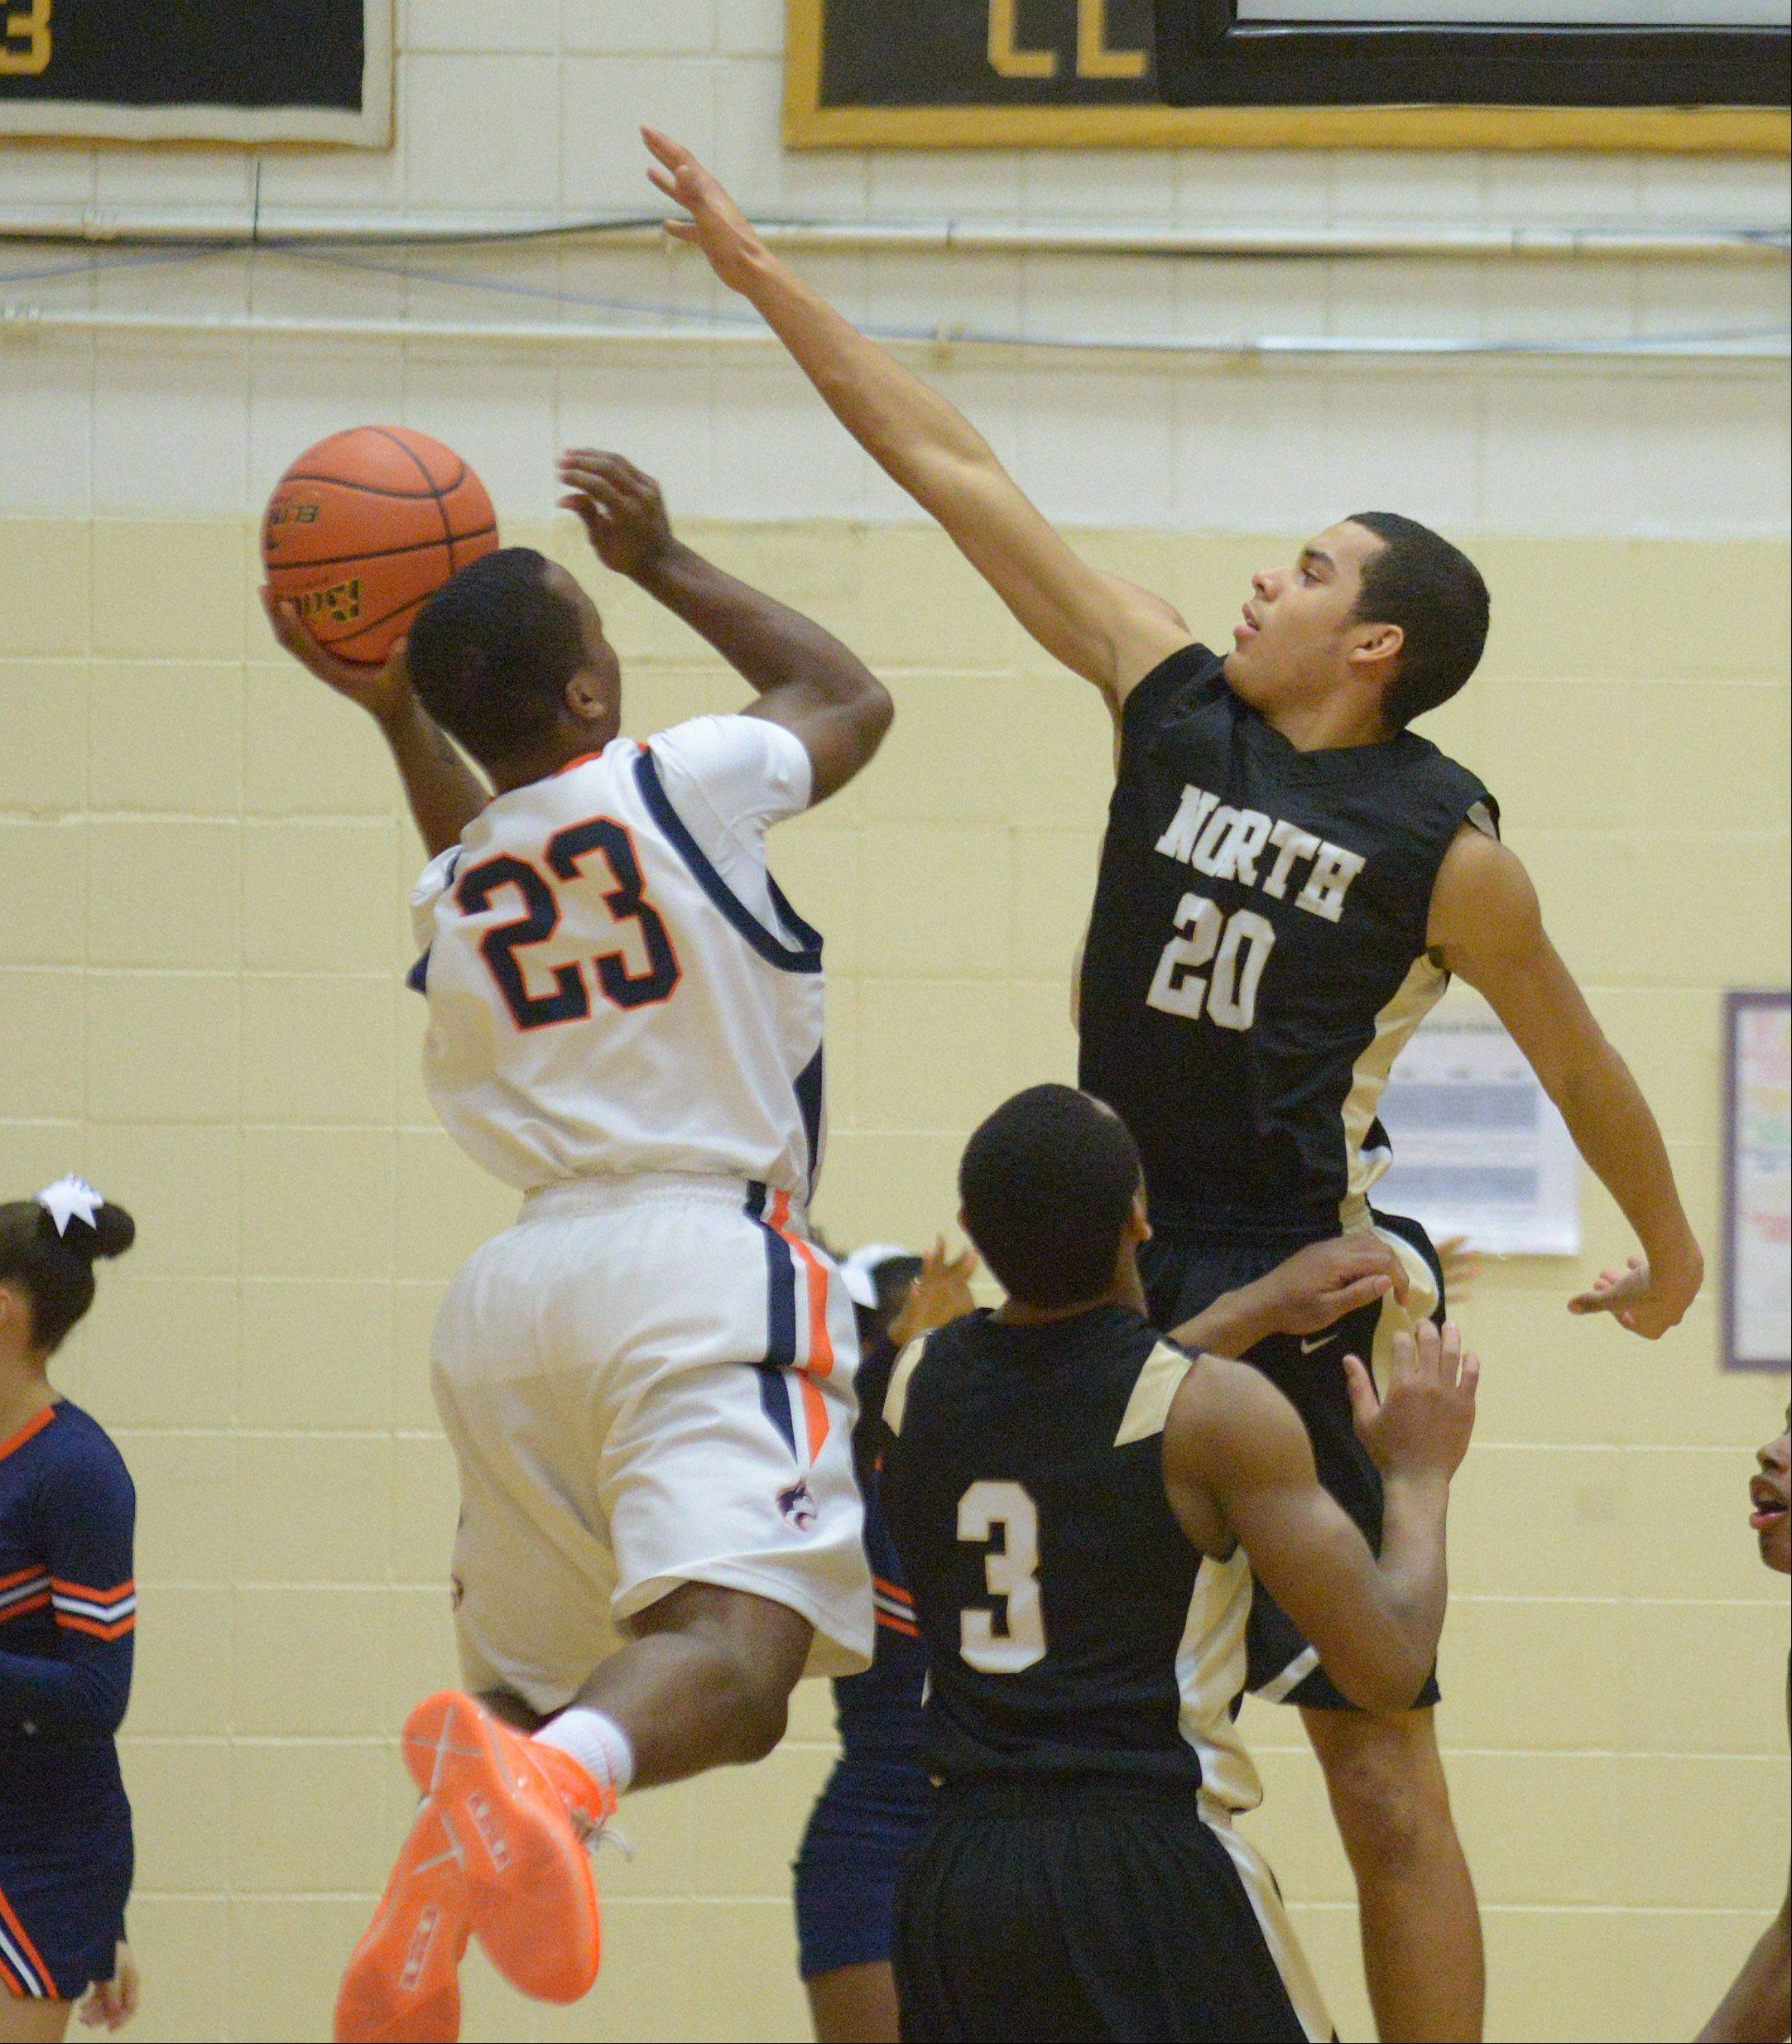 Erik Locke of Oak Park-River Forest puts up a shot while Kendall Holbert of Glenbard North blocks.